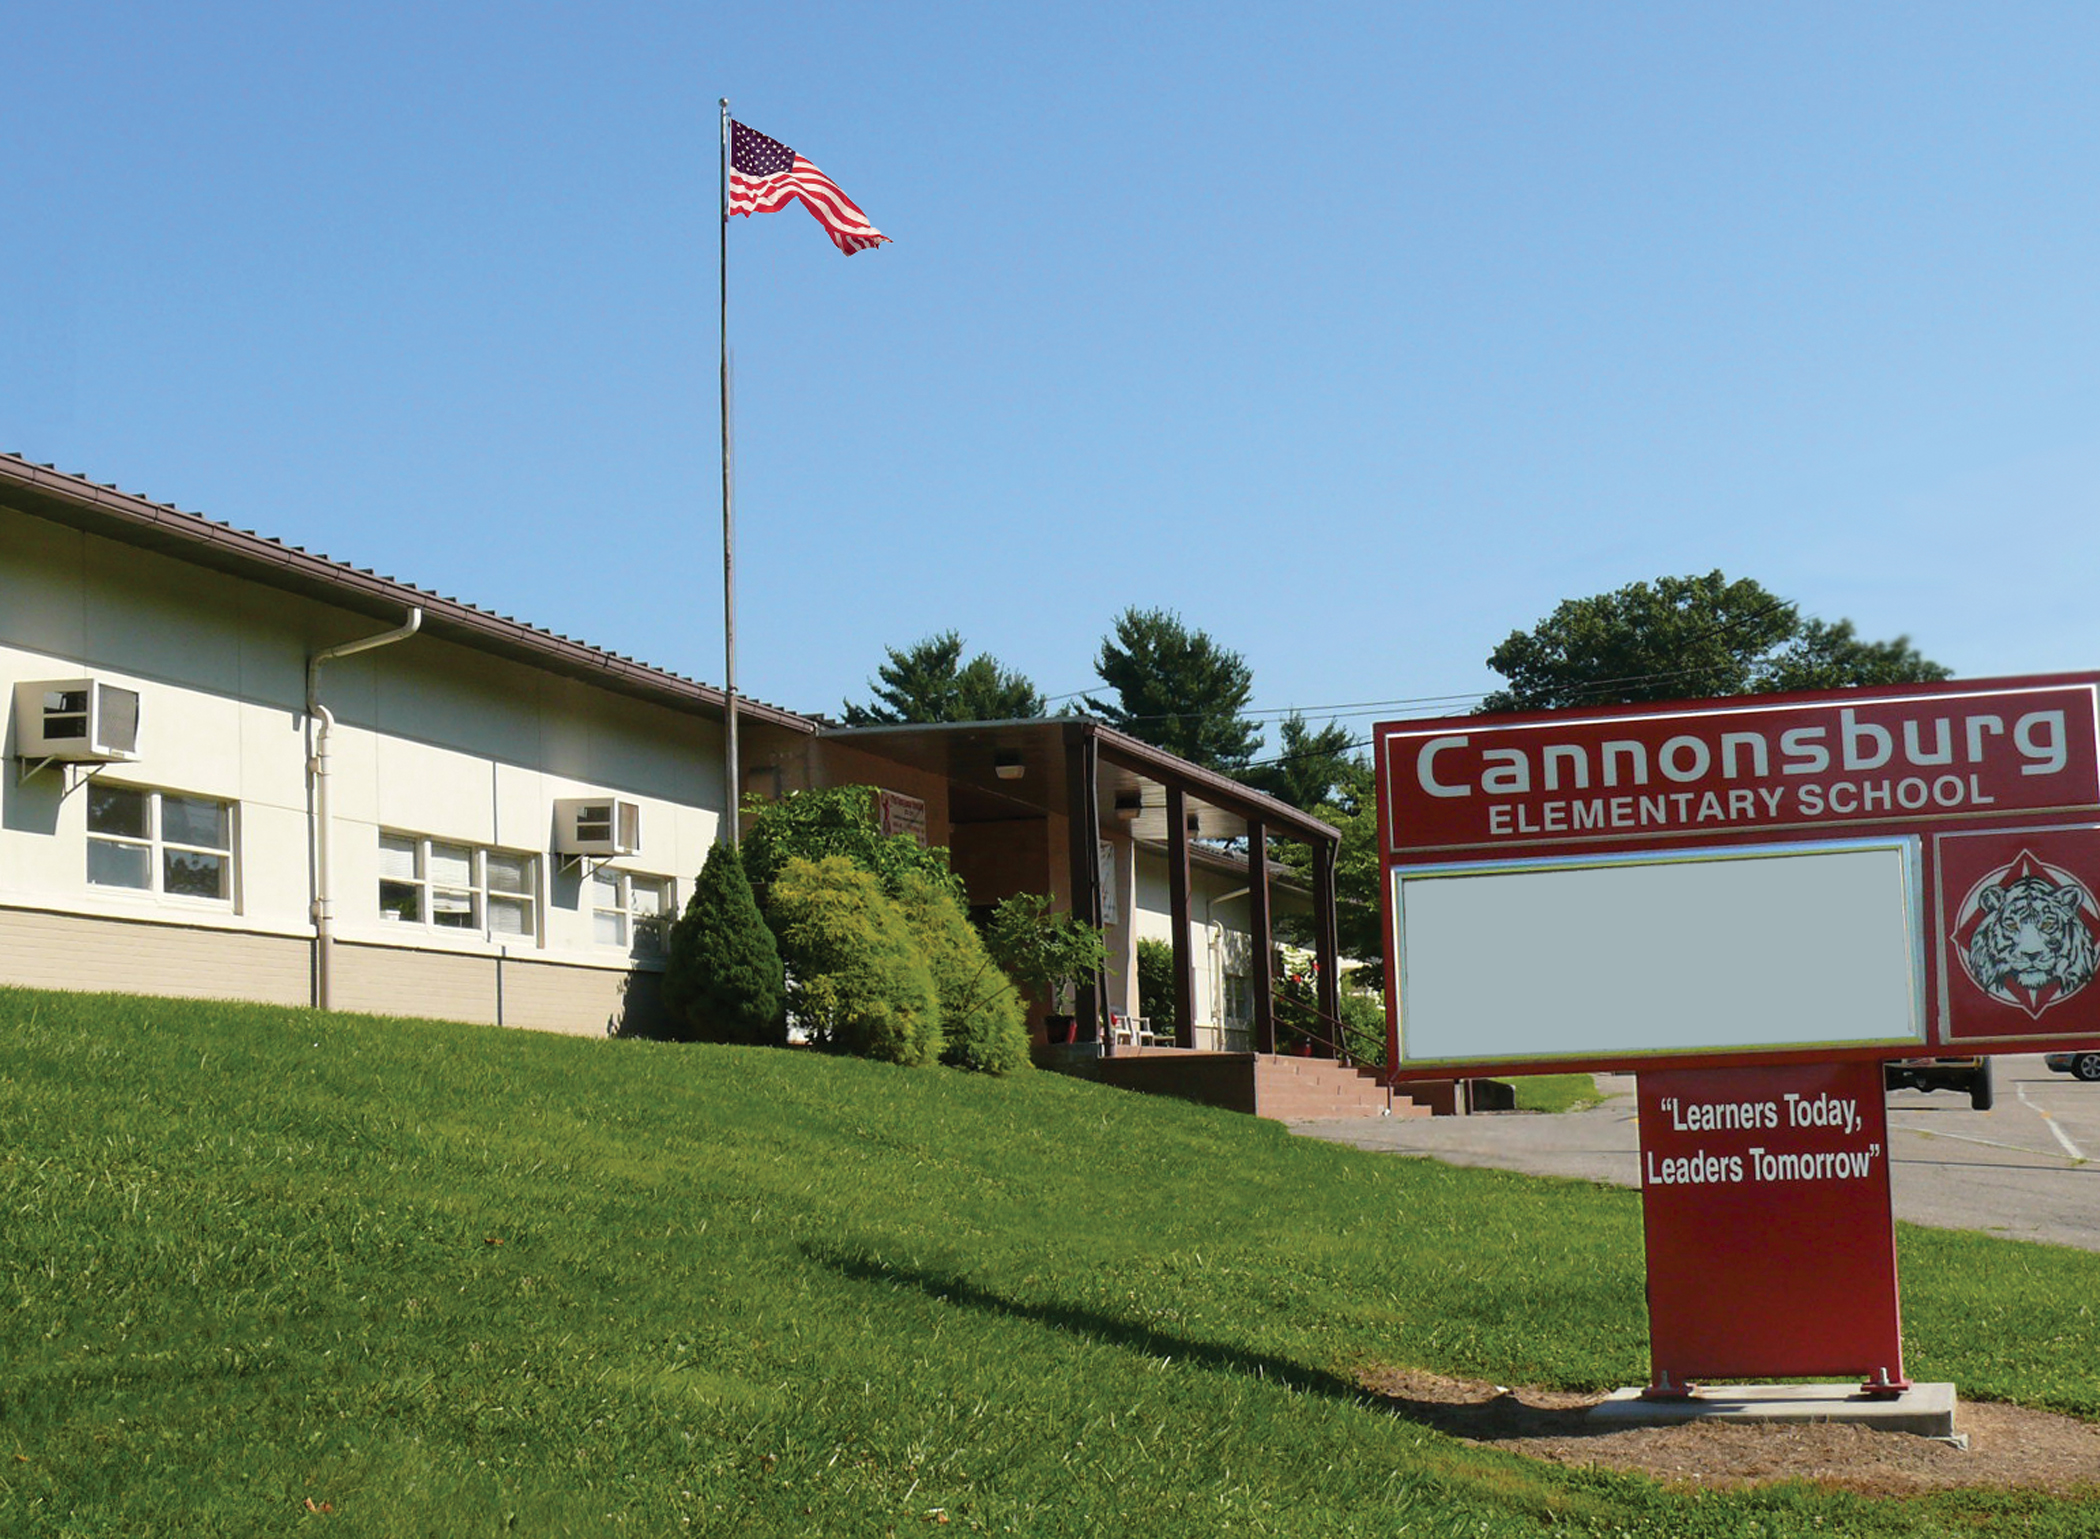 Photo of Cannonsburg Elementary School.